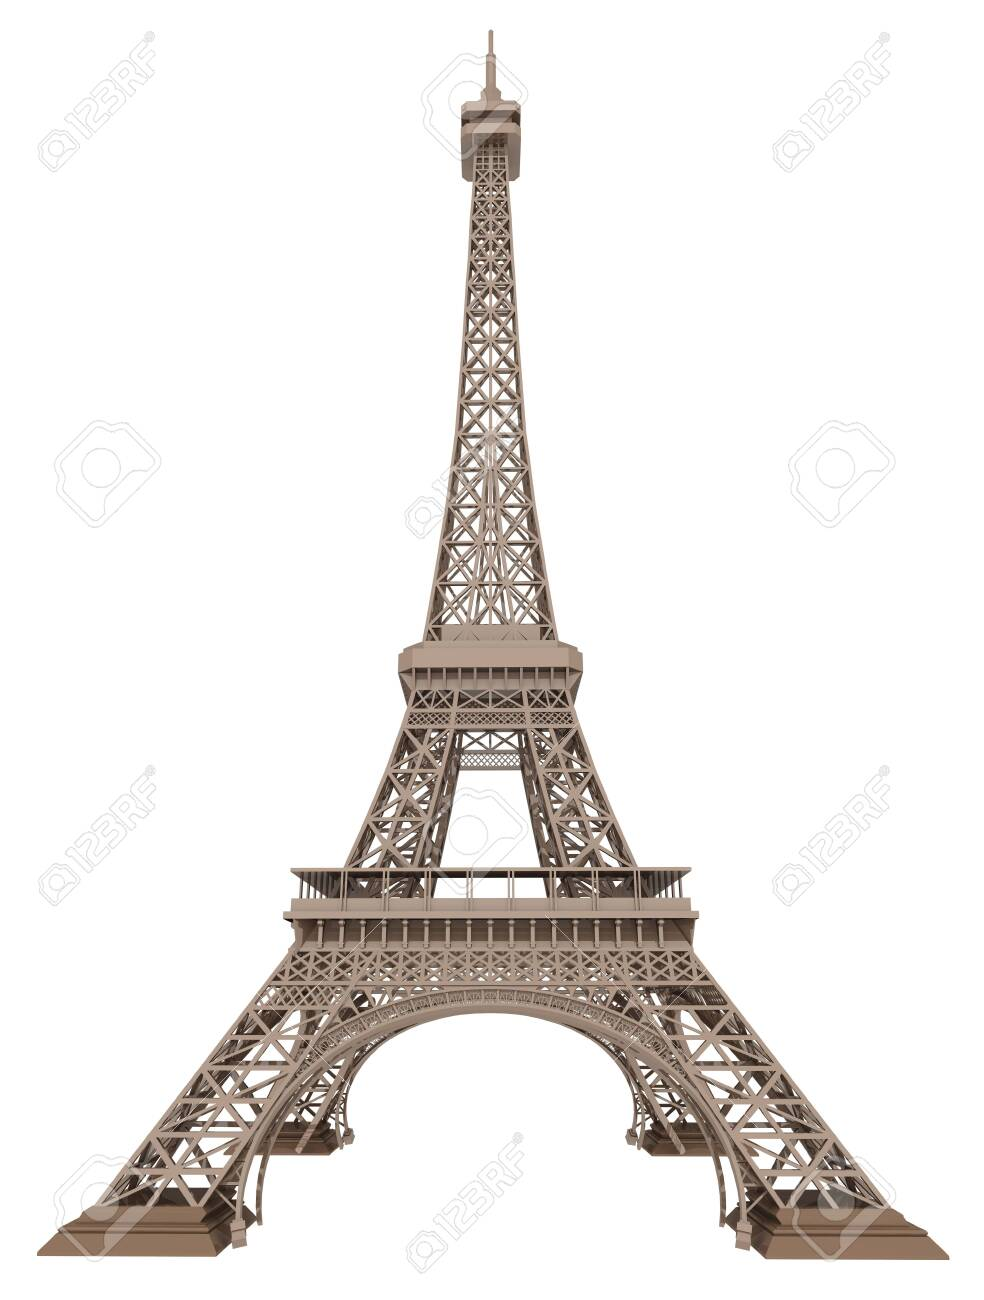 Eiffel tower isolated on white background - 150947299